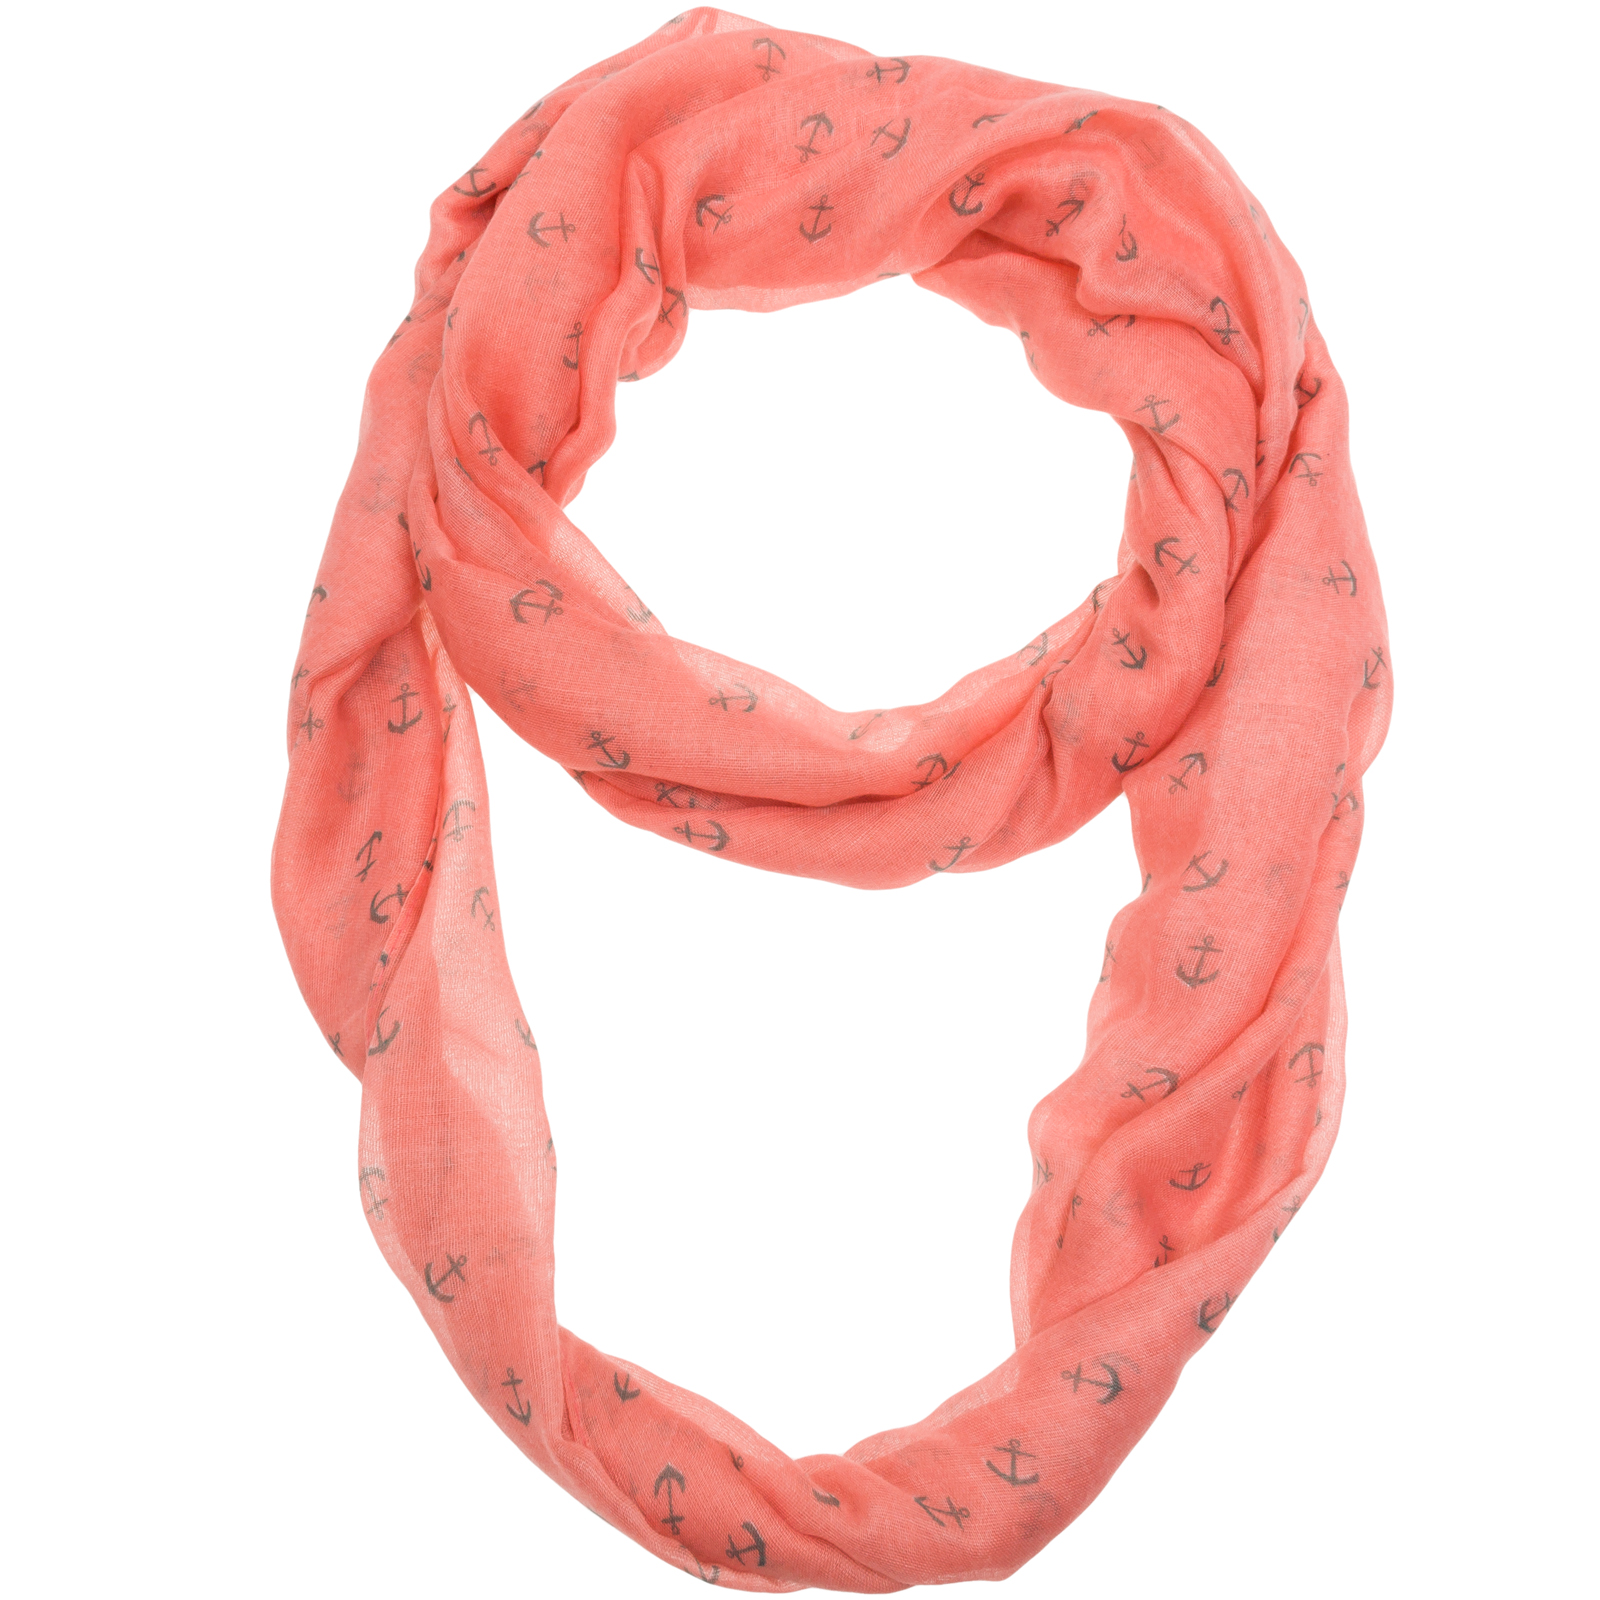 SILVER LILLY NEW Womens Pink Anchor Print Soft Sheer Infinity Loop Fashion Scarf